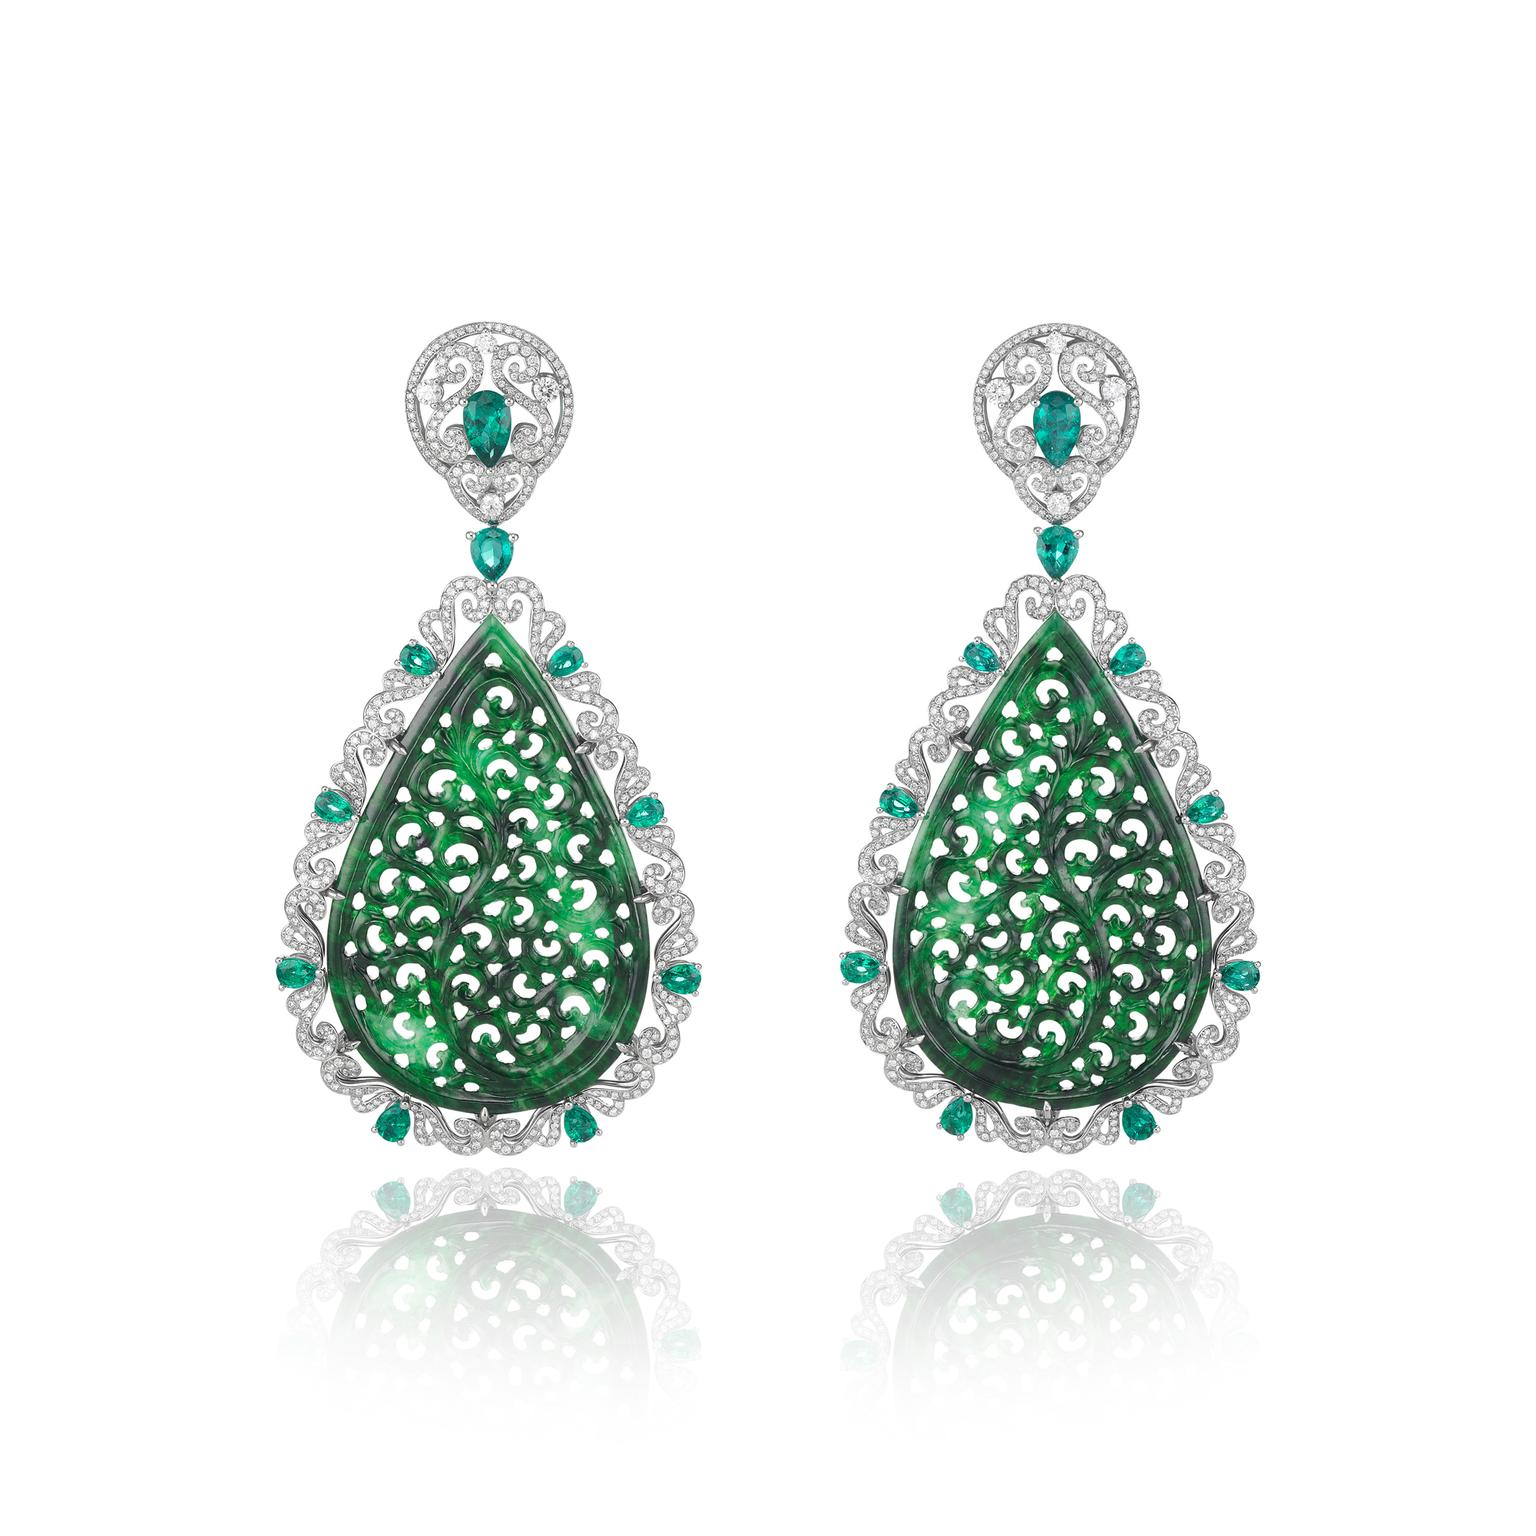 Chopard Haute Joaillerie Jadeite Earrings